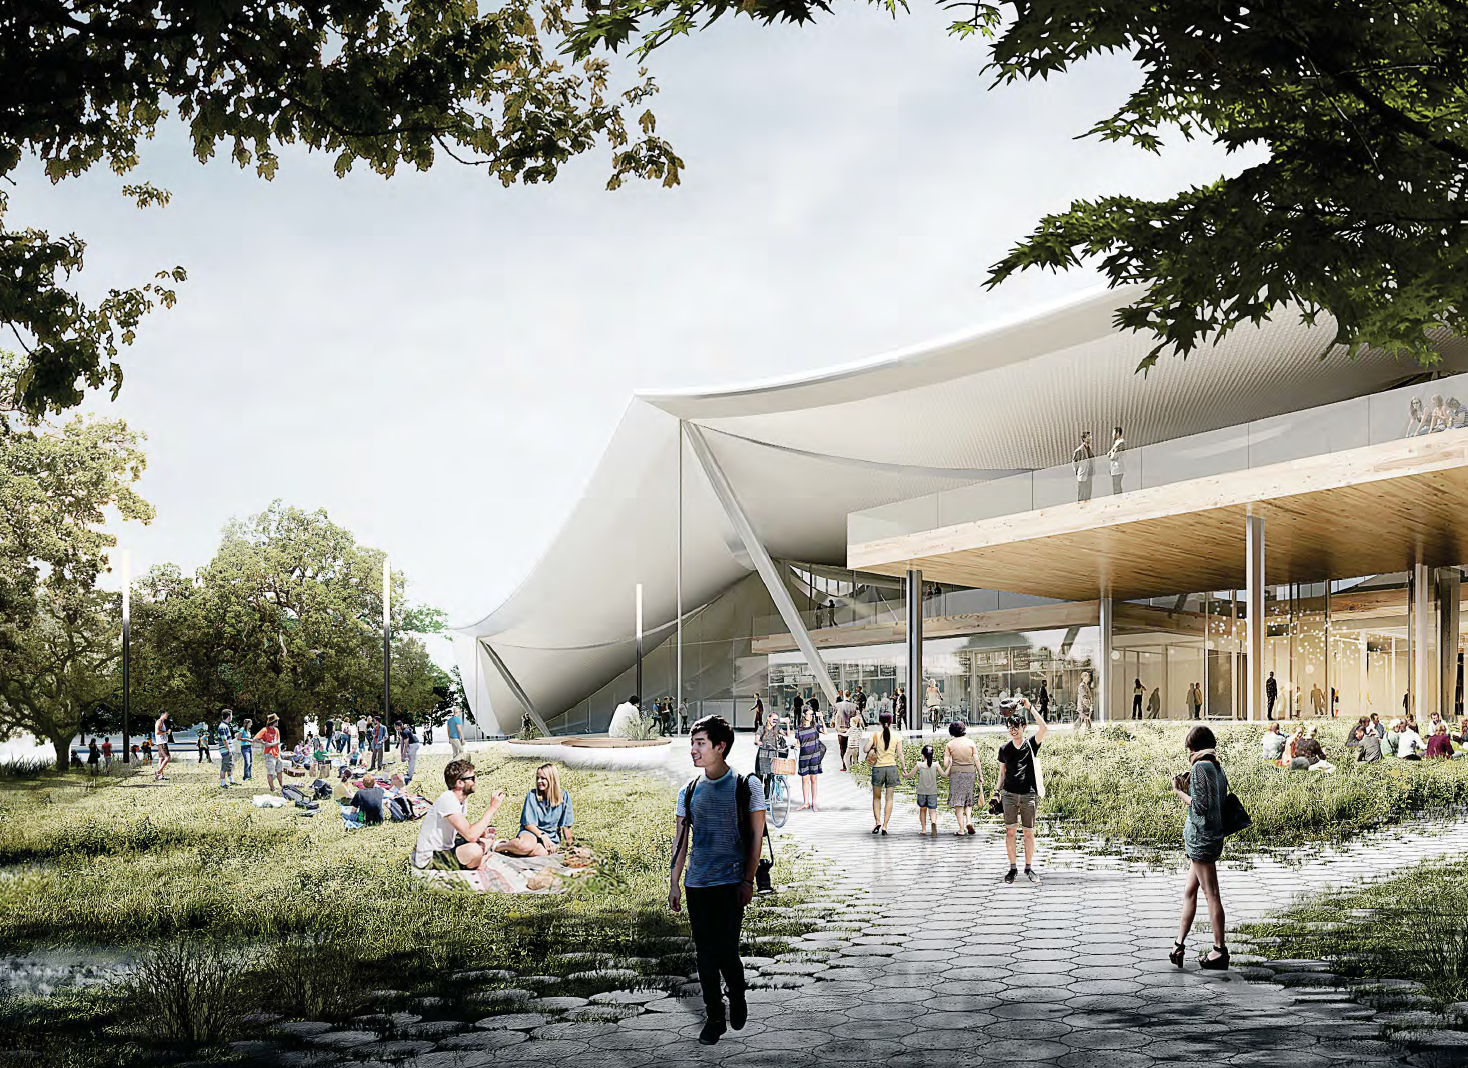 A view of Google's new proposed office building in Mountain View. The building is up for review by the city.